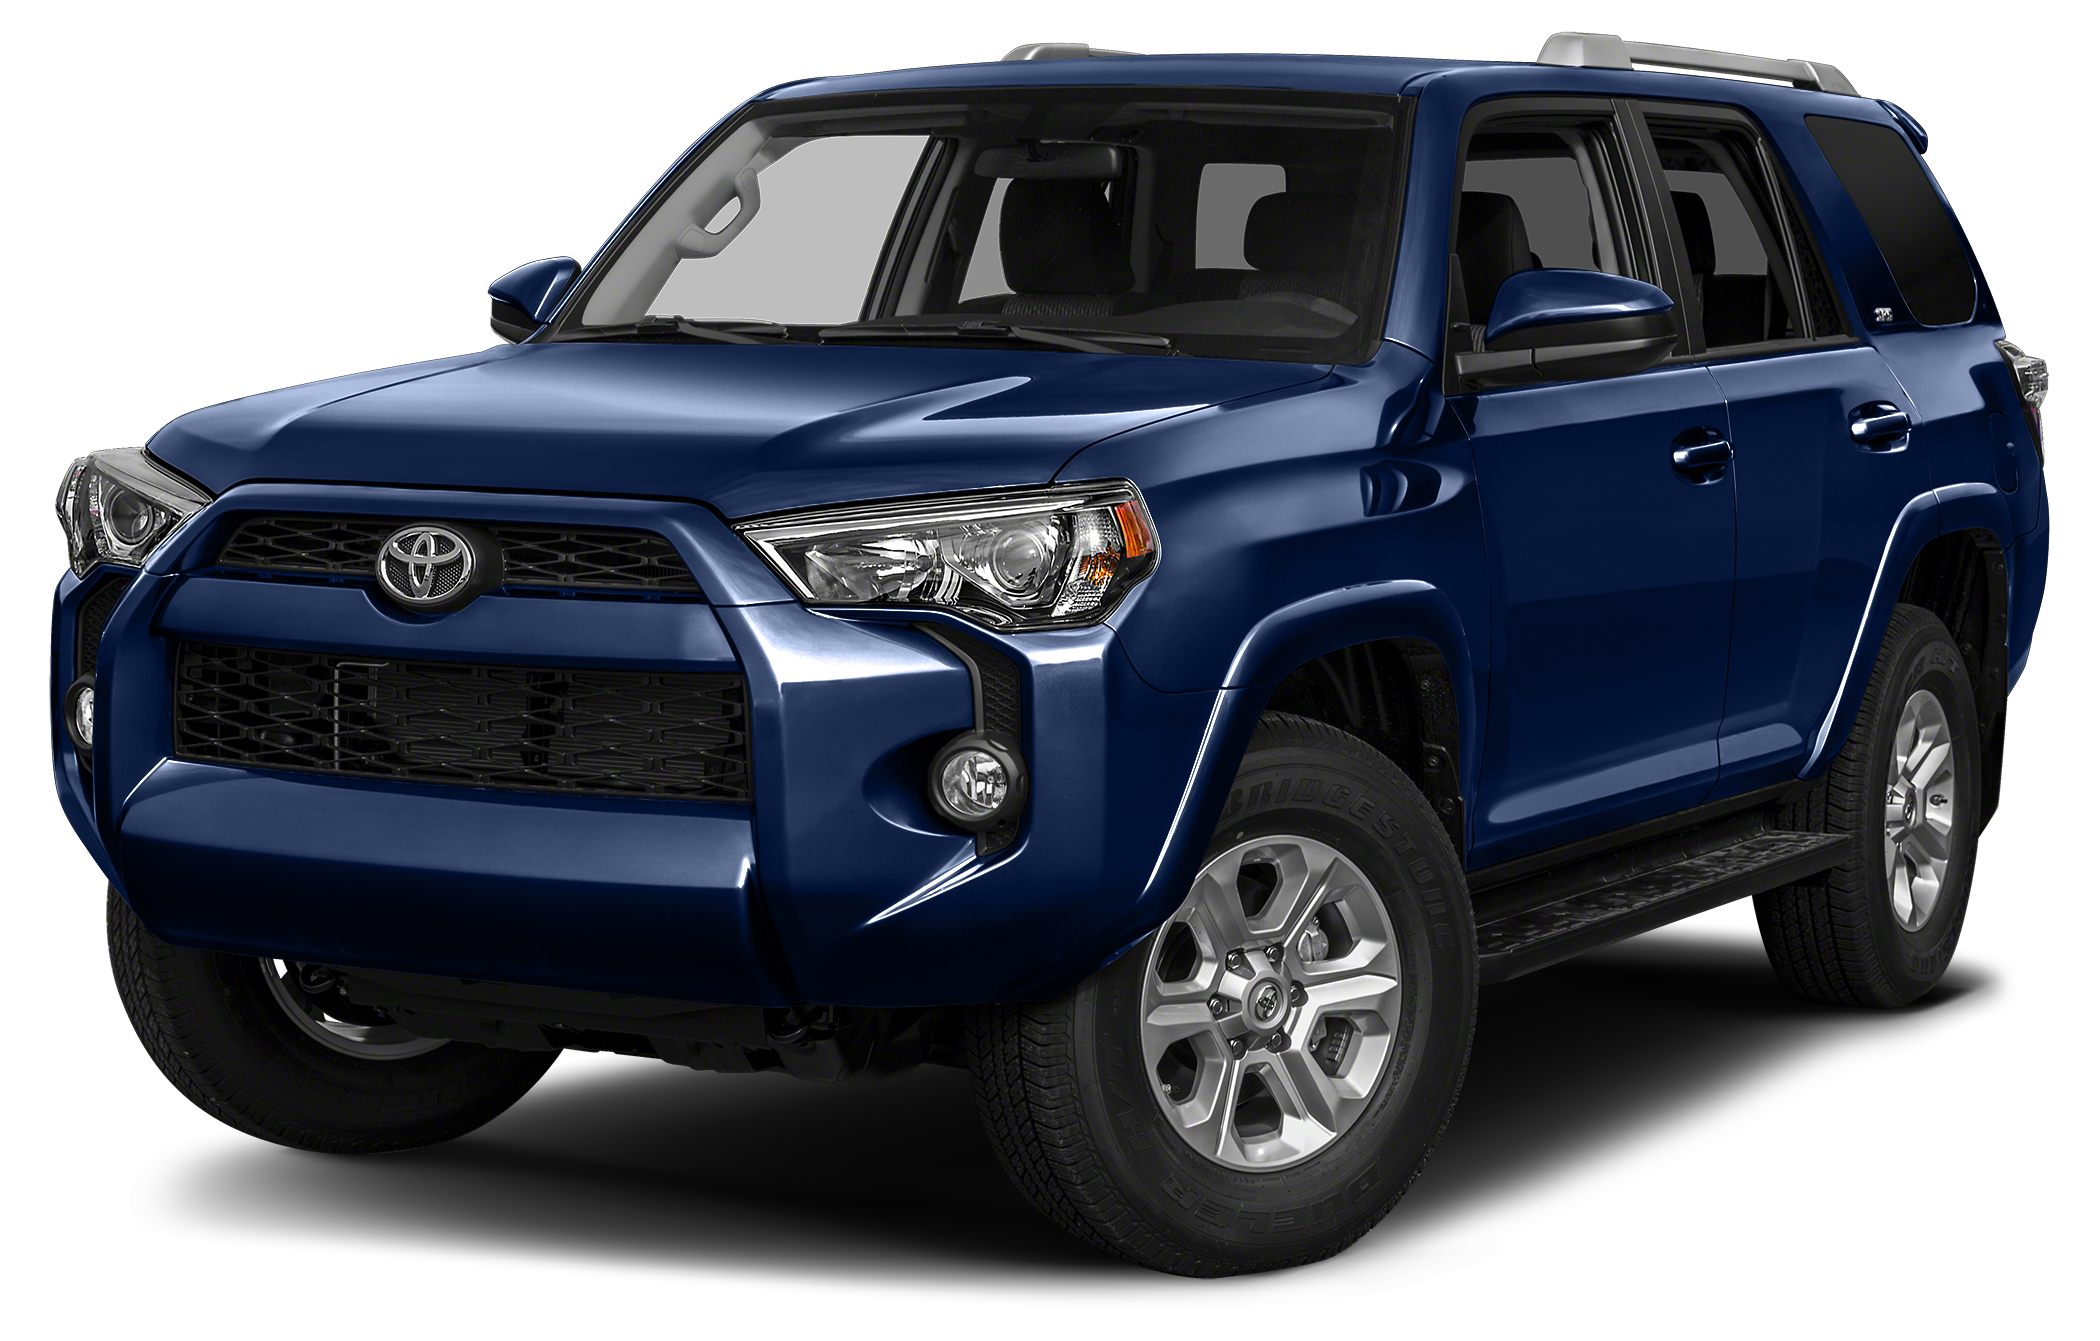 2016 Toyota 4Runner SR5 Westboro Toyota is proud to present HASSLE FREE BUYING EXPERIENCE with upf